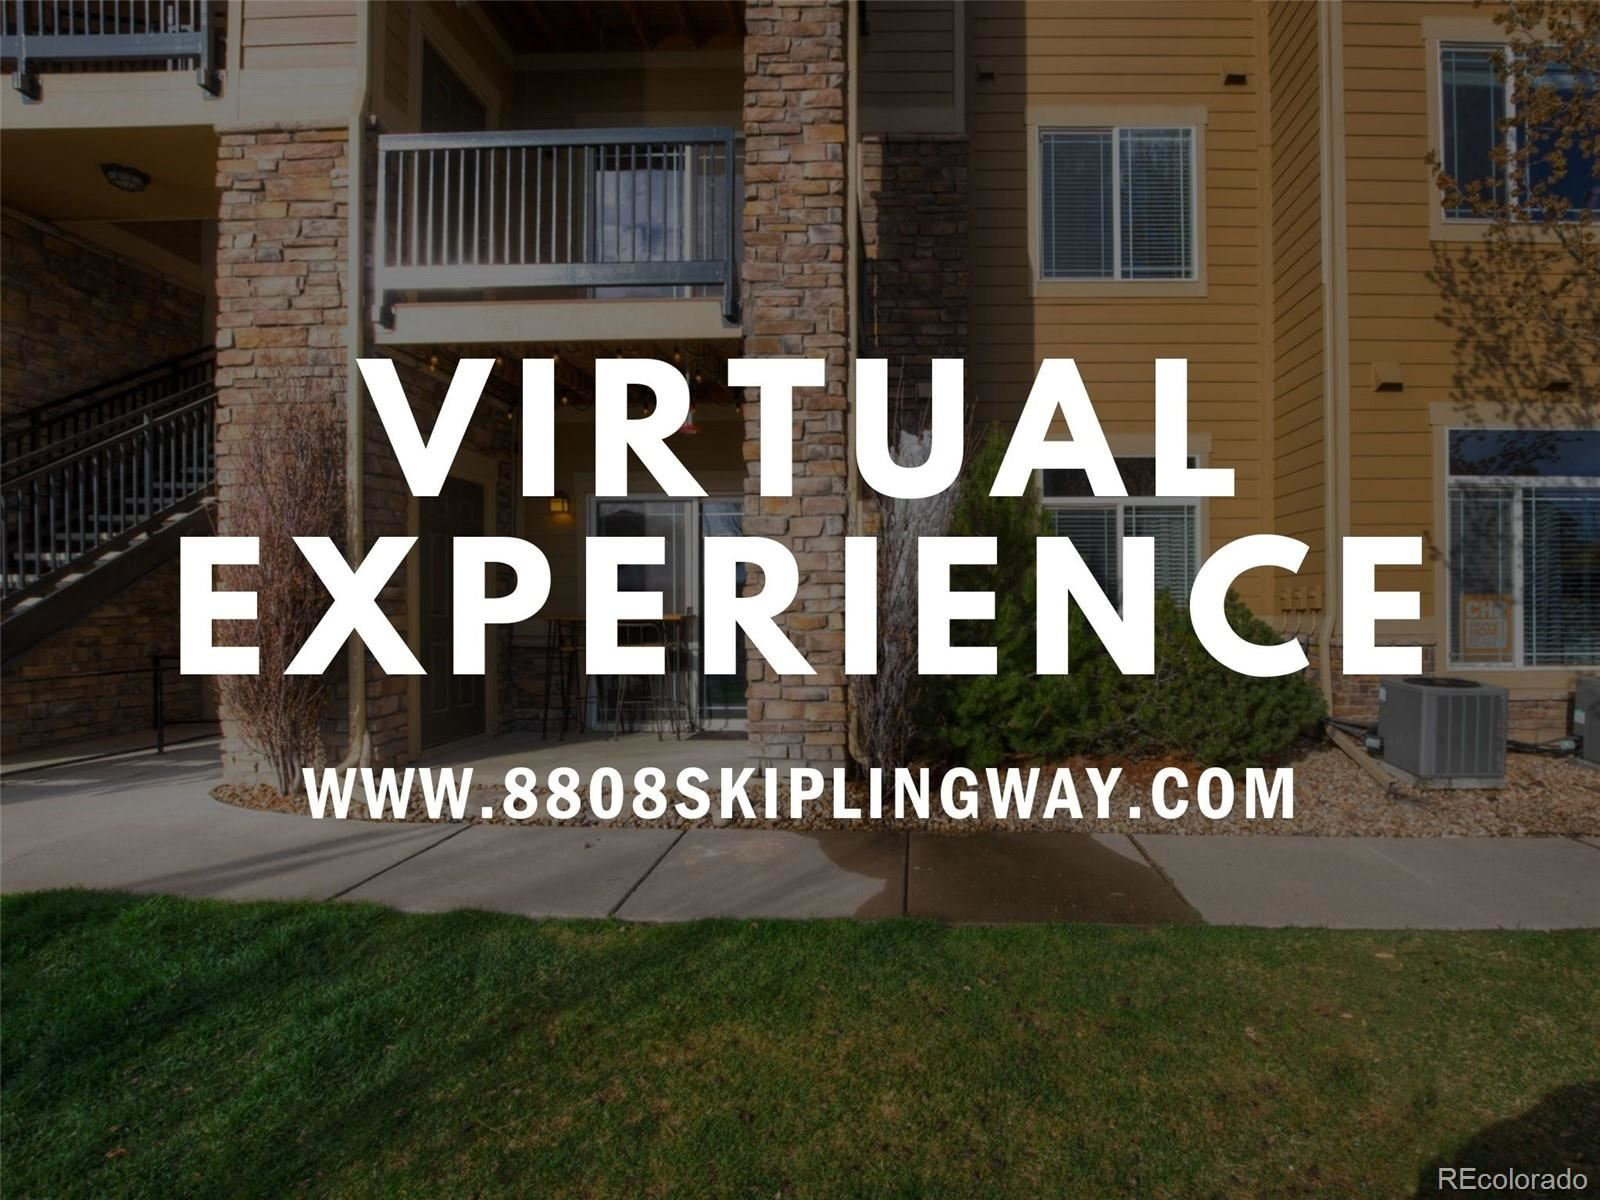 8808 S Kipling Way  103 #103, Littleton, CO 80127 - #: 7308541